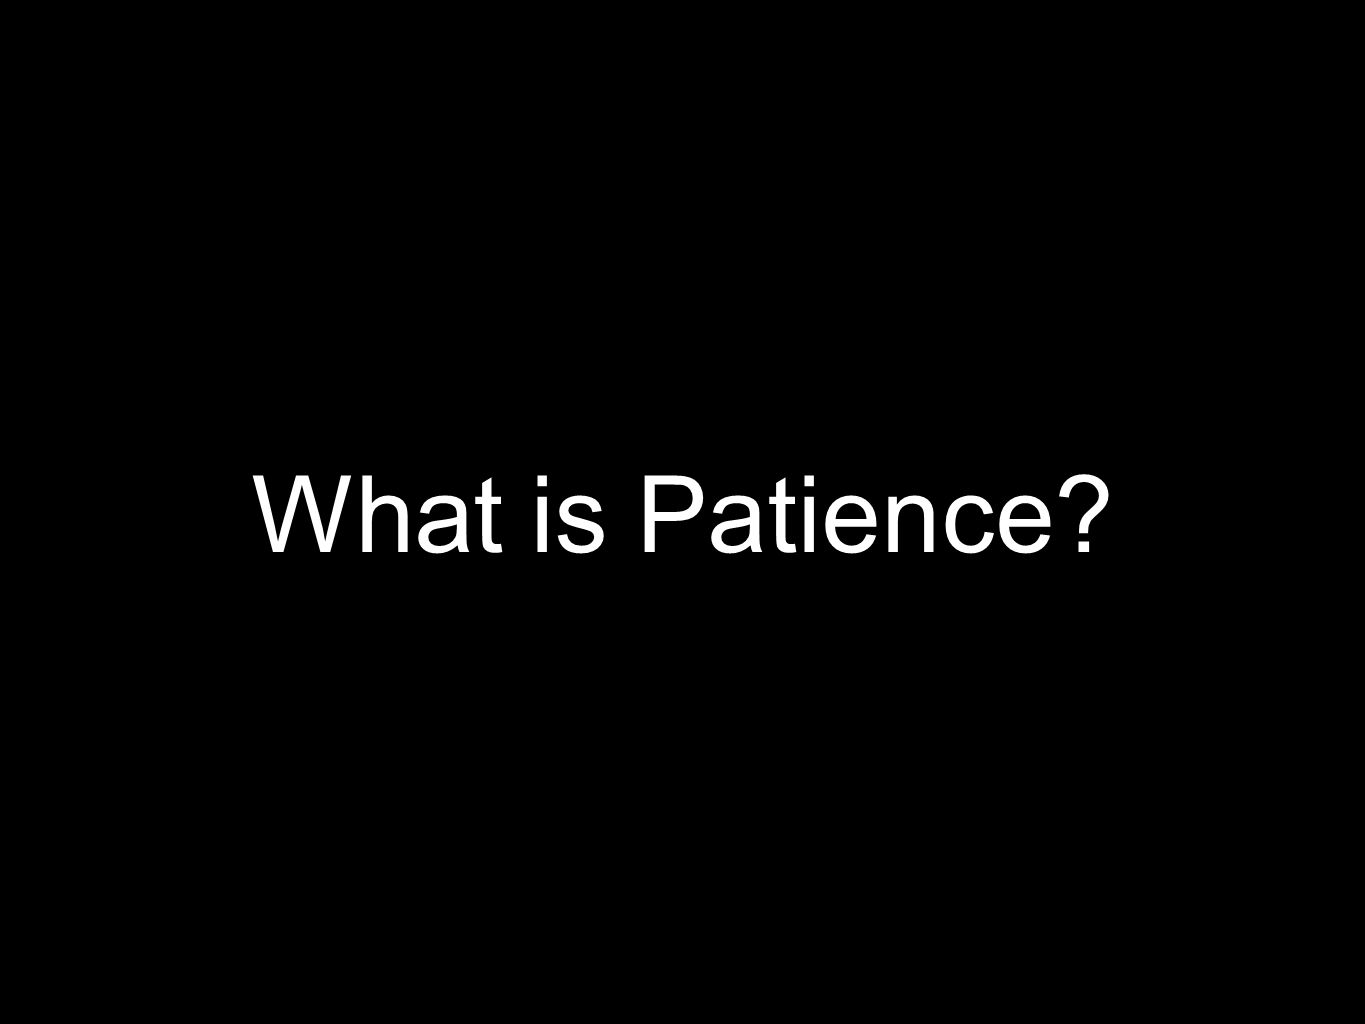 Patience is self restraint which does not hastily relatiliate against wrong slow to anger (Psalm 86:15)